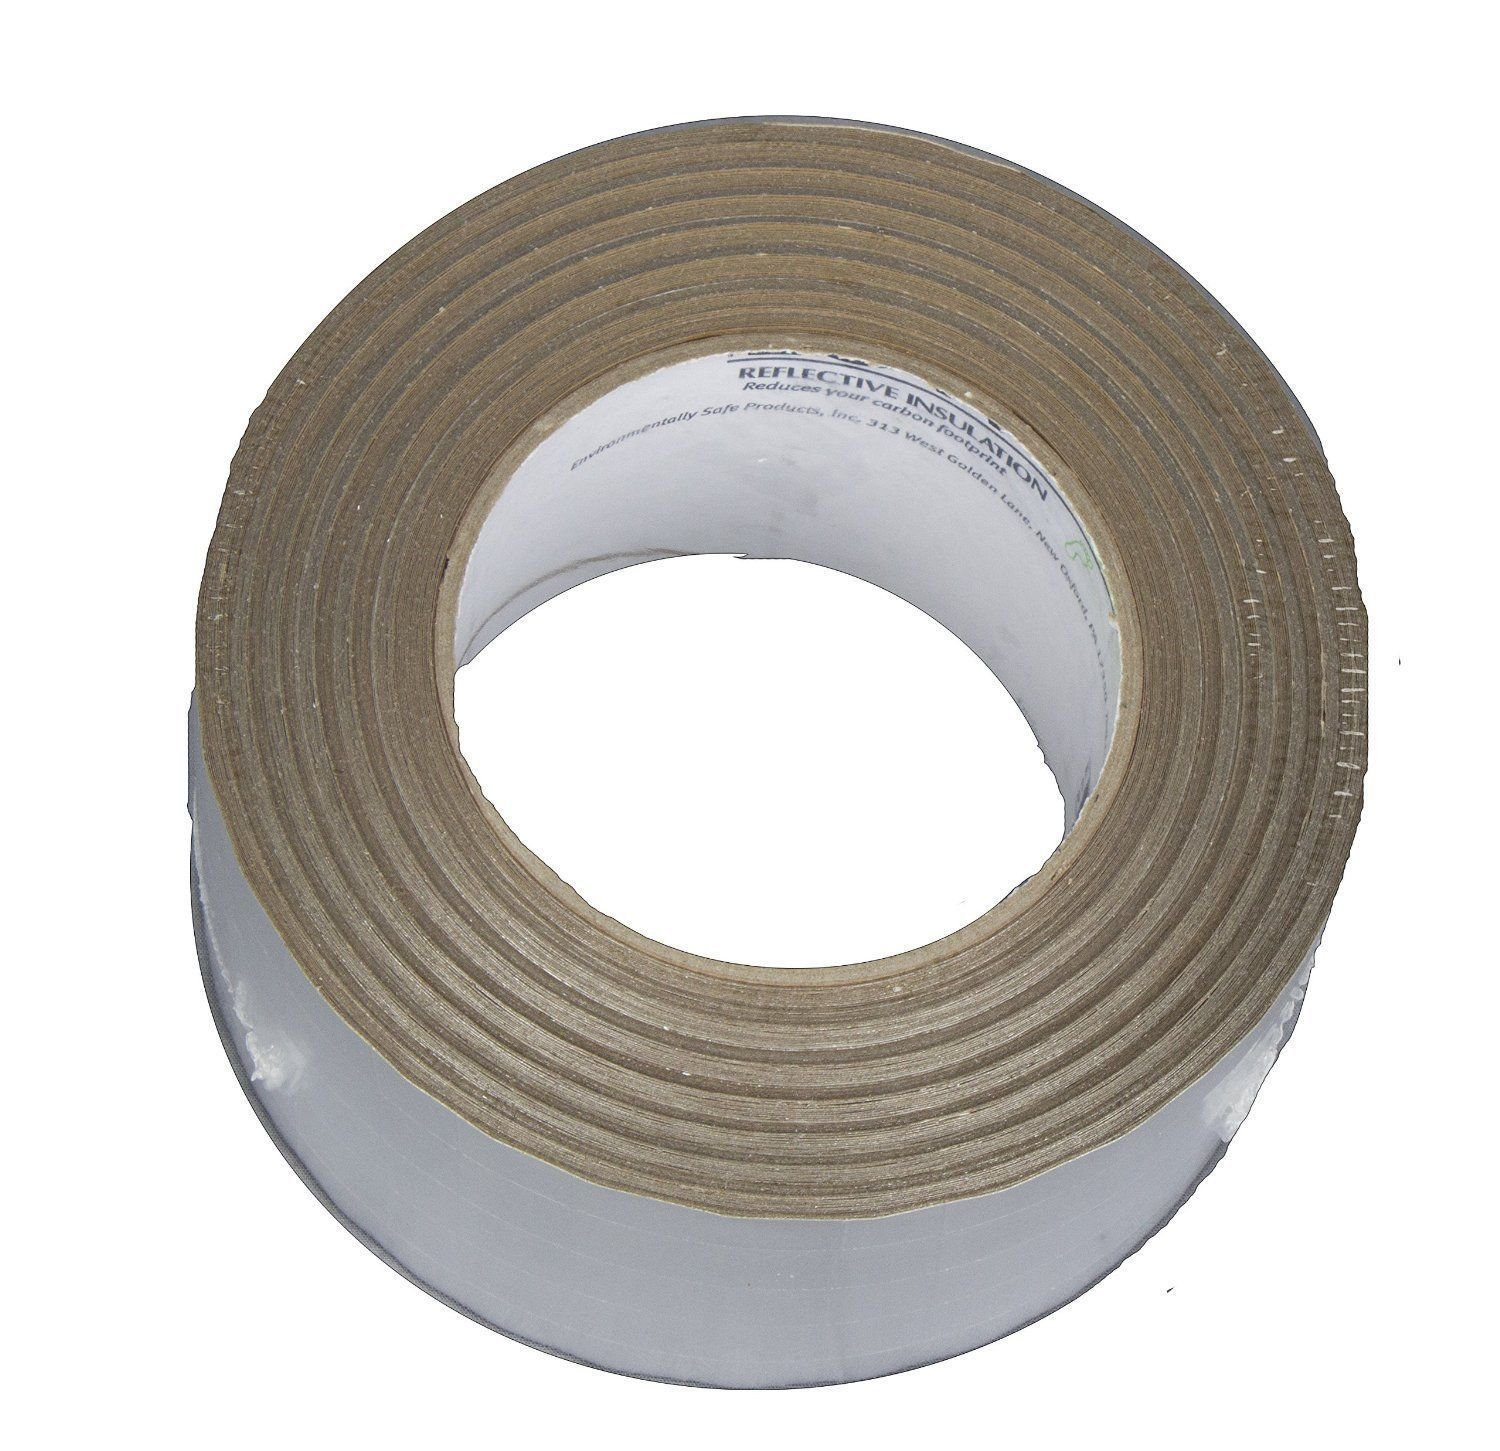 Heavy Duty Pure Aluminum Mylar Reinforced Scrim Tape 2.5ft x 150ft 50 Yards